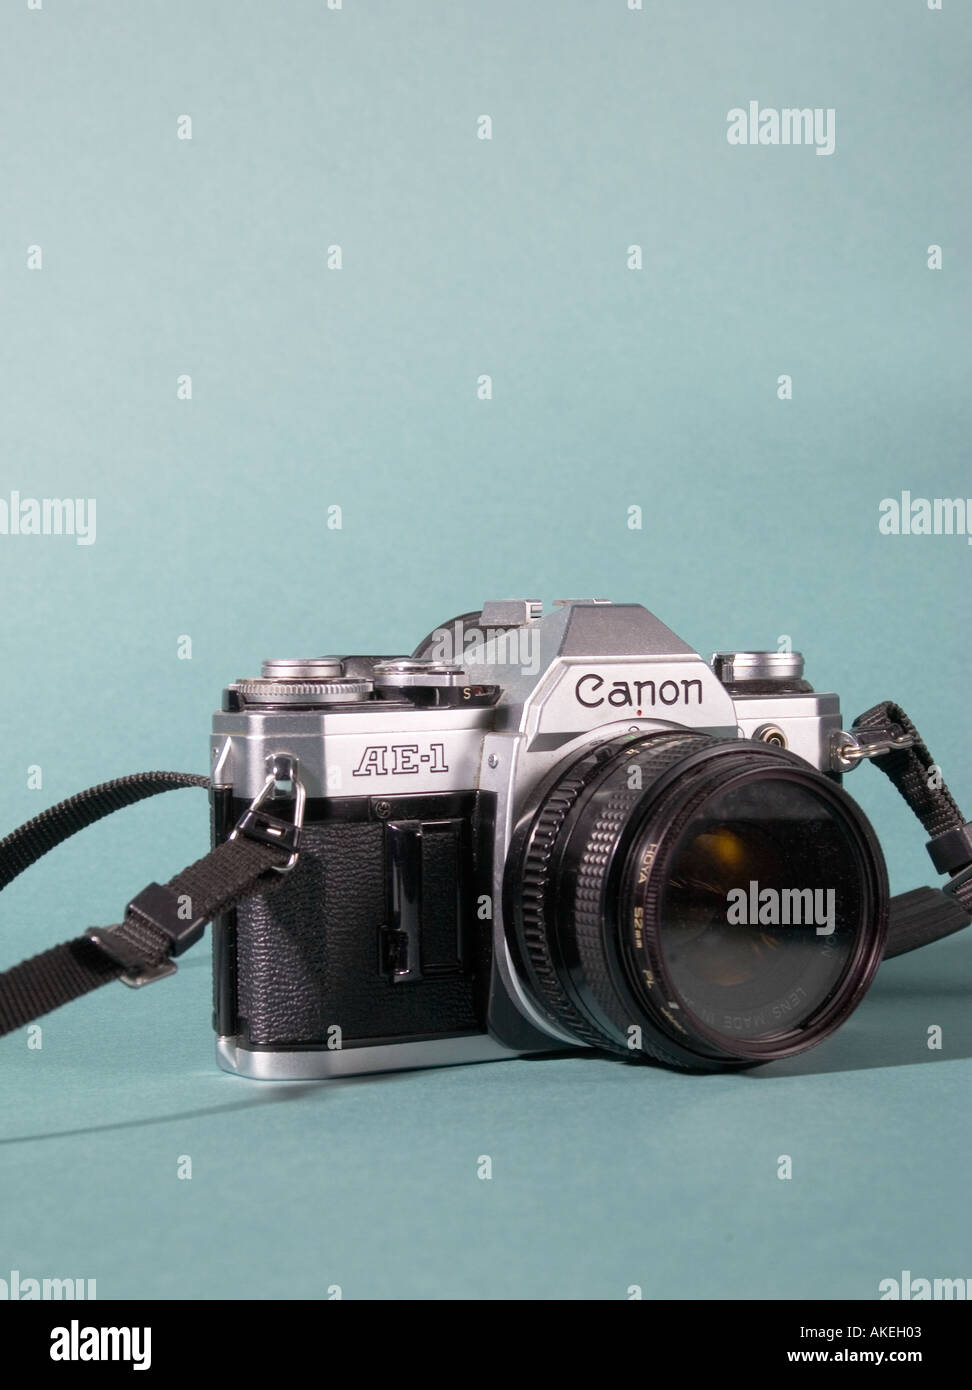 Stock Photo of Older Model Canon AE 1 Film Camera - Stock Image